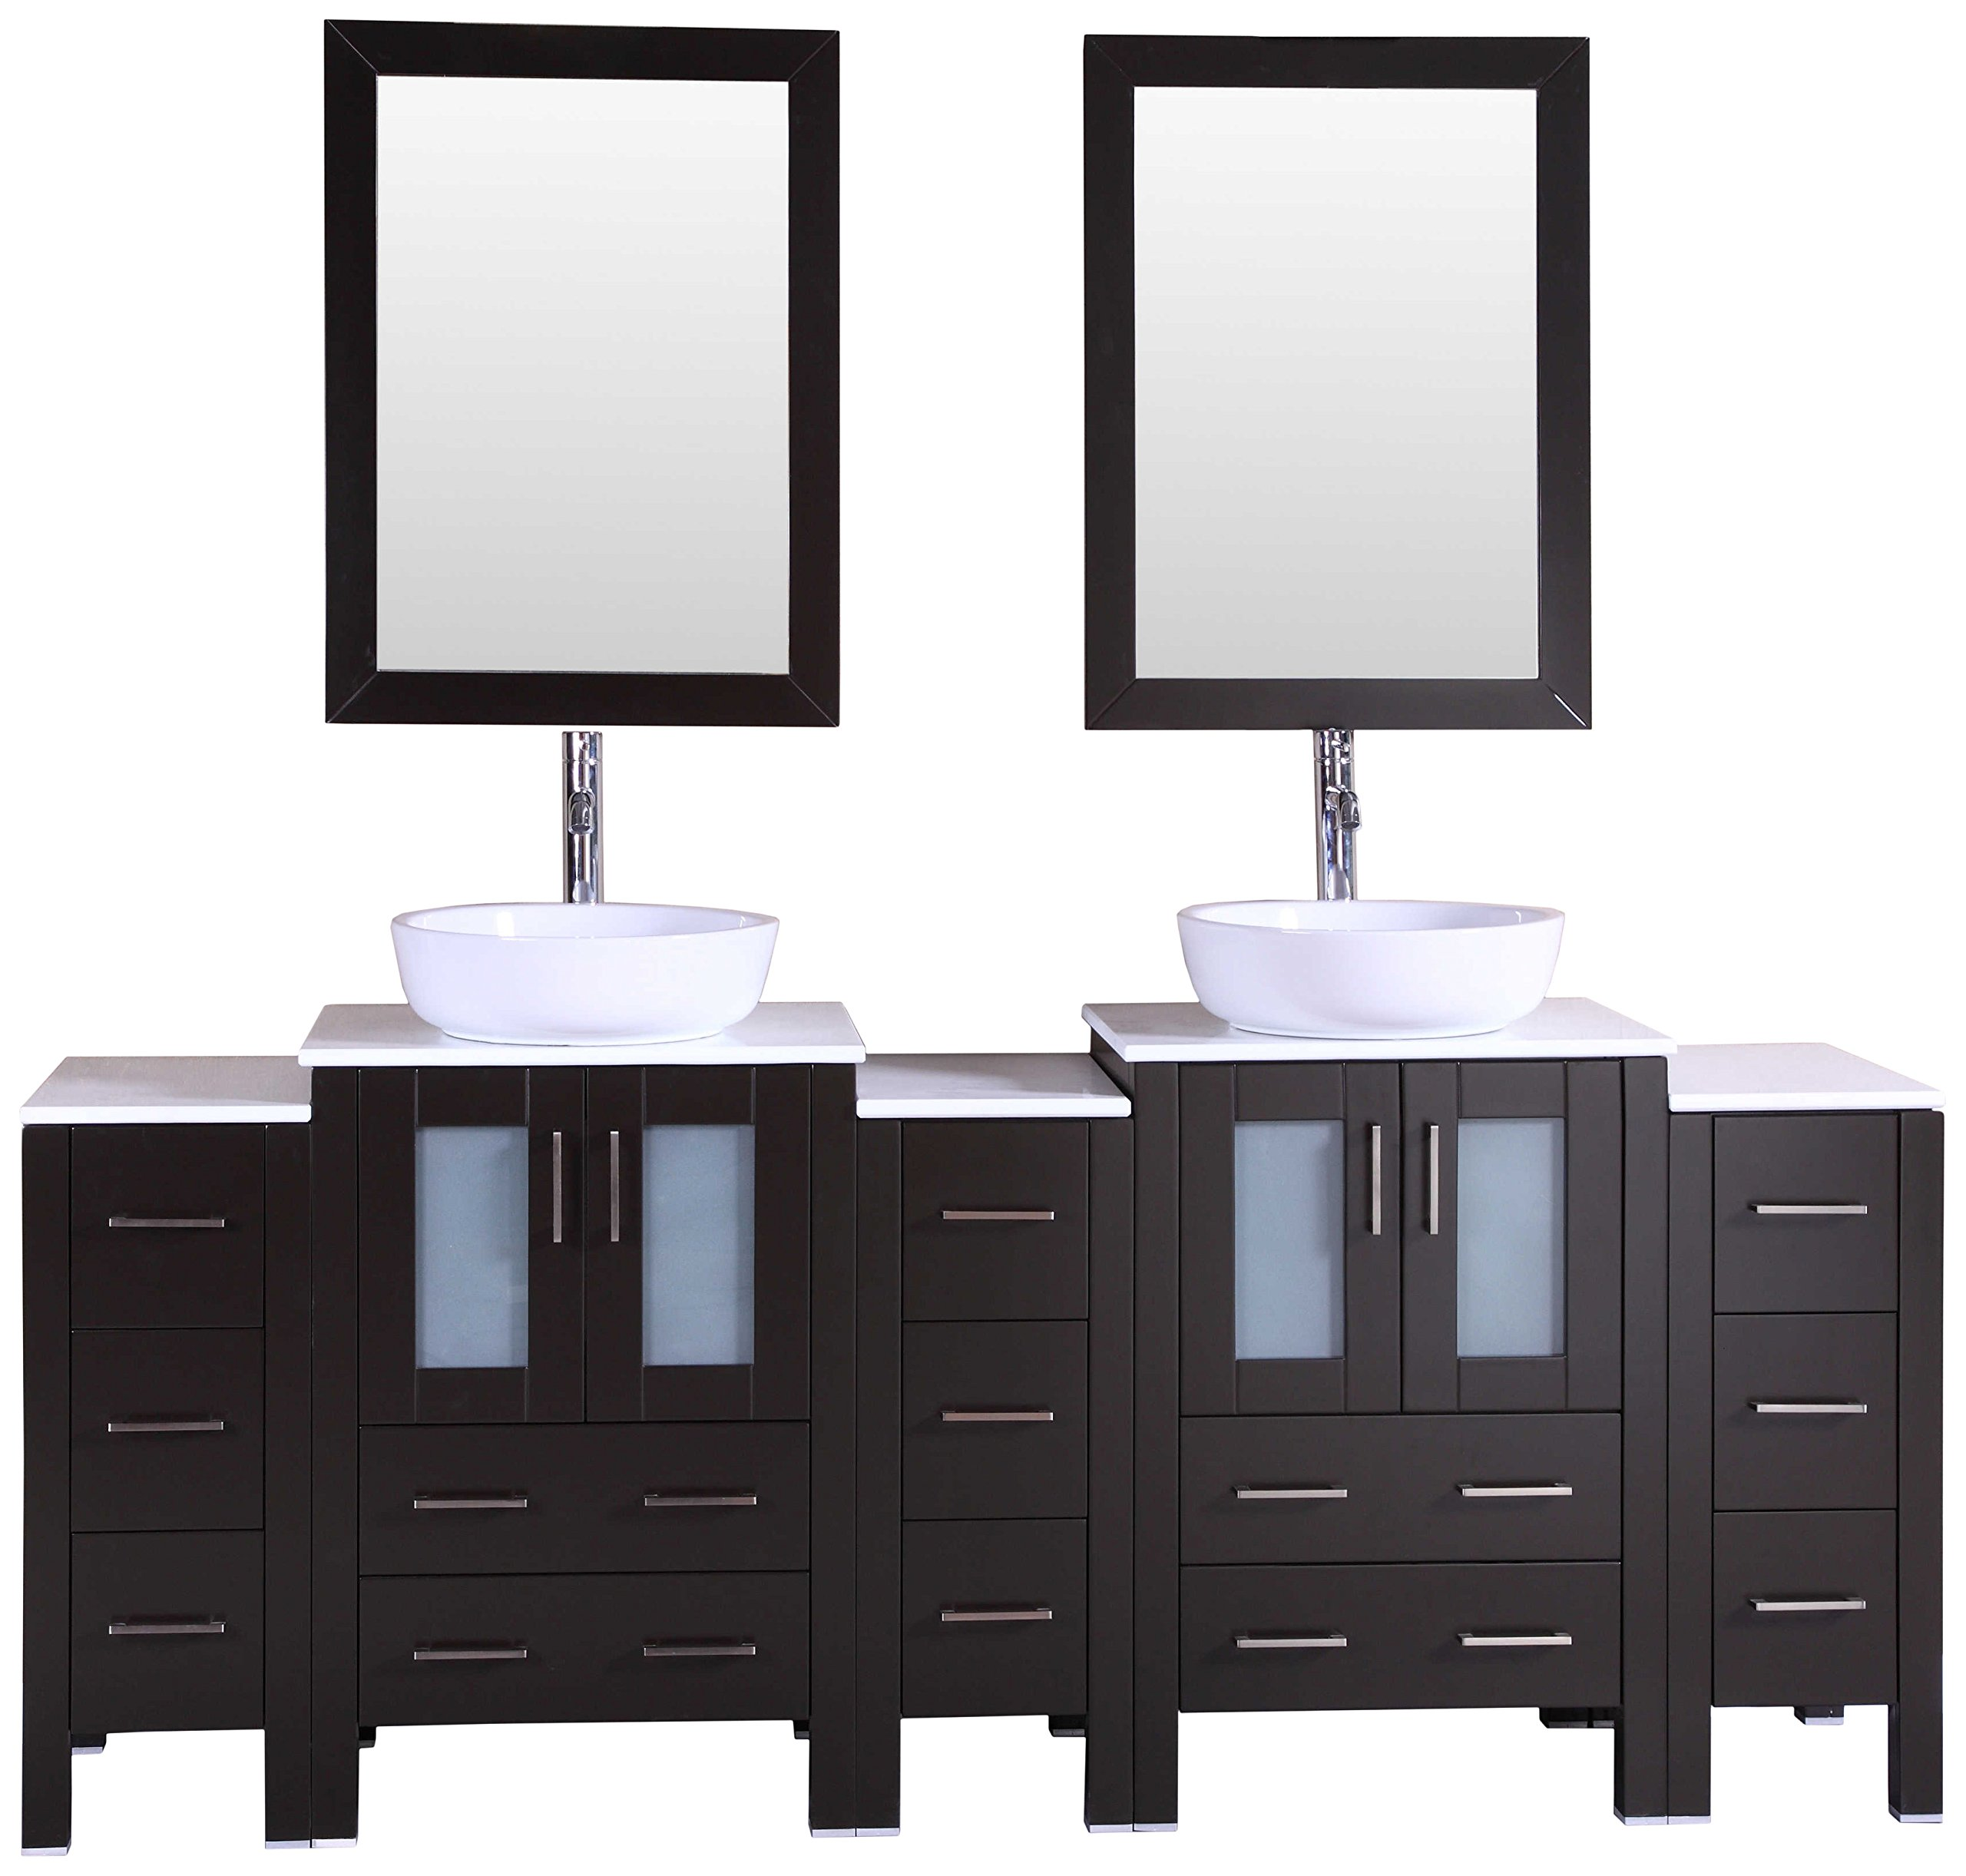 Bosconi Bathroom Vanities 84'' Double Vanity Set With Oval Vessel Sinks, Countertop, 2 Cabinets, 2 Mirrors, And 3 Side Cabinets, Espresso/Phoenix Stone